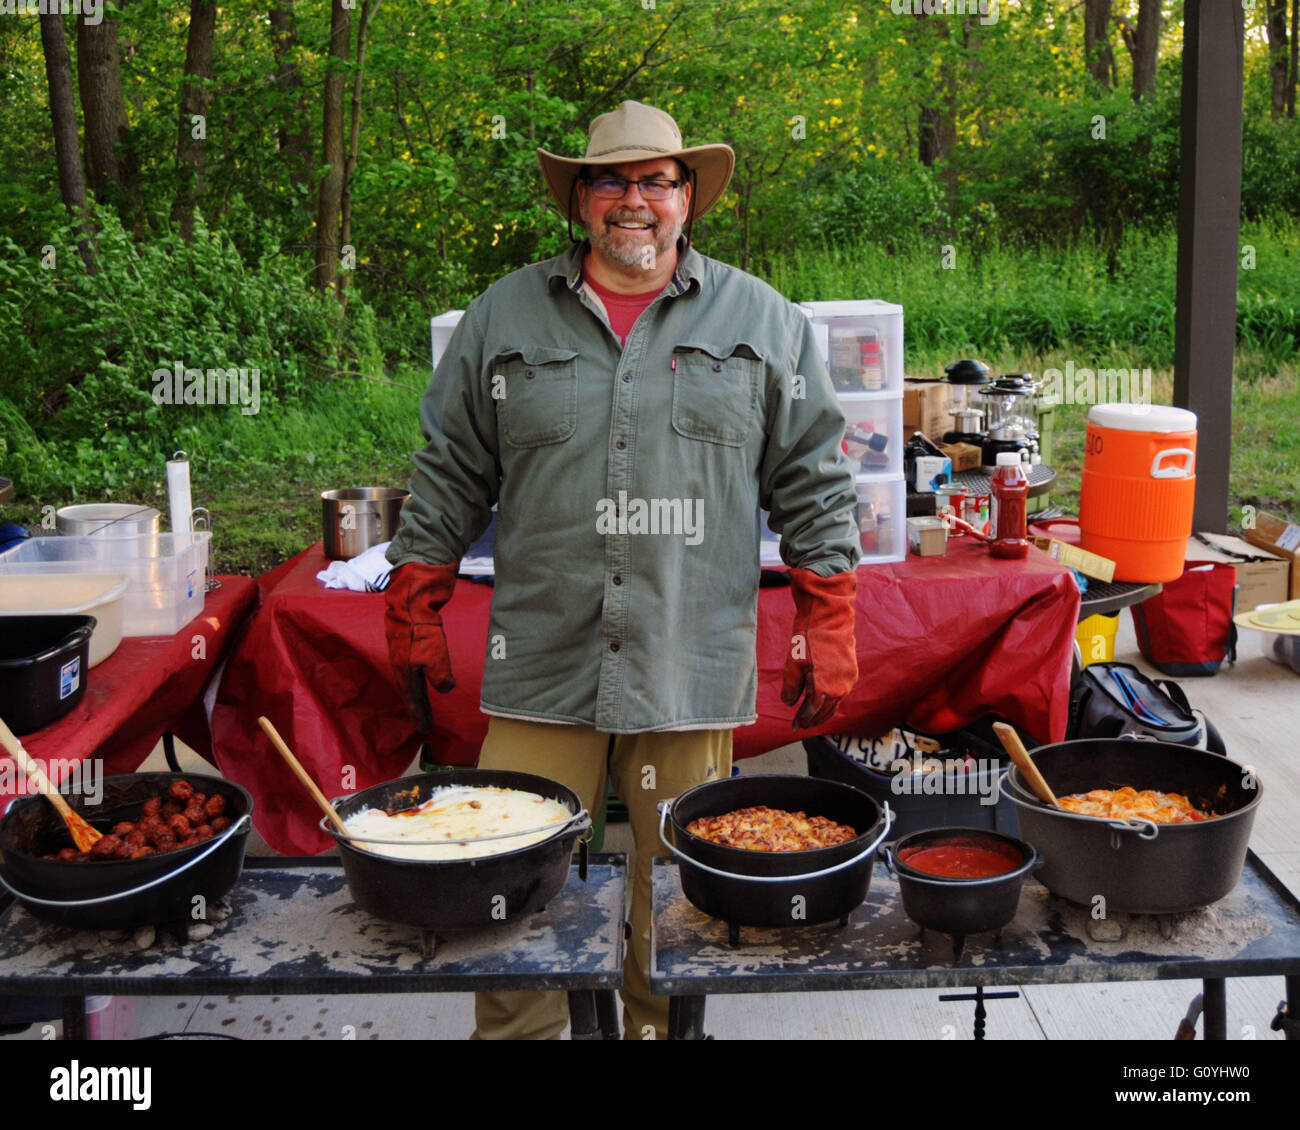 Grove City, Ohio, USA. 05th May, 2016. World class chef and REI ...